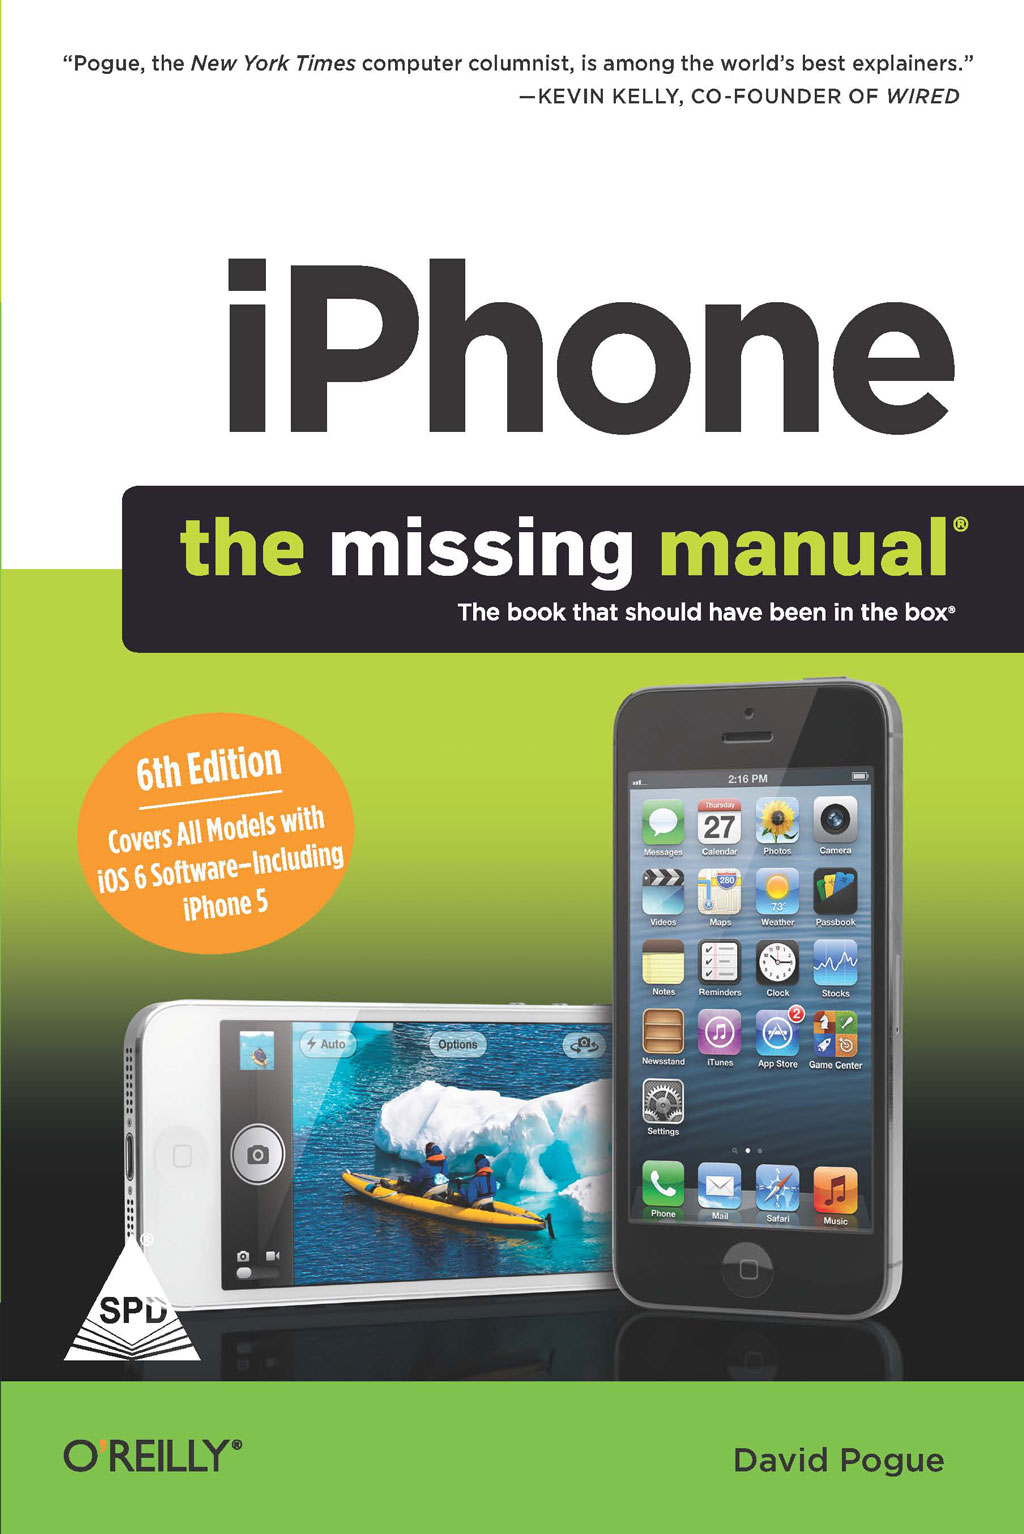 Books Iphone The Missing Manual 6 Ed Covers All Models With Ios Including 5 Grayscale Edition